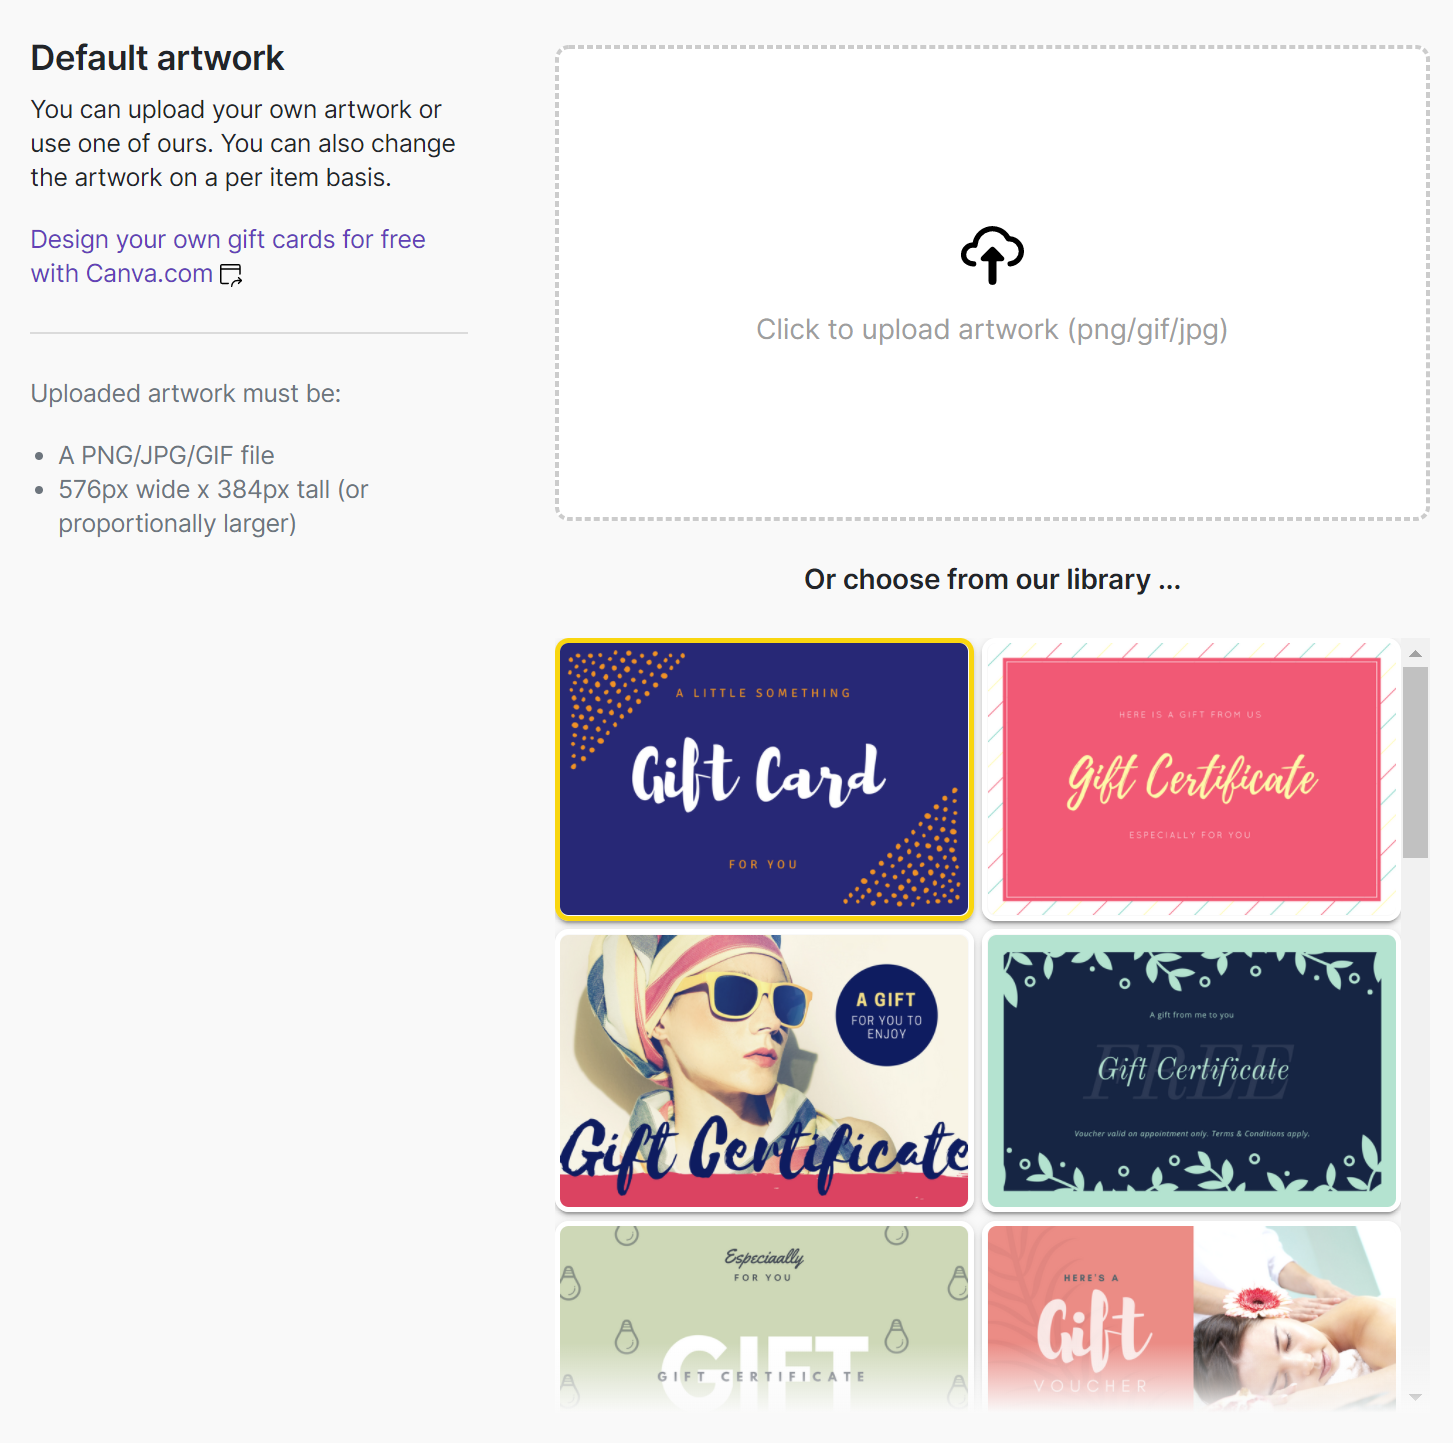 File Check Out Card how to create and upload a gift card design - gift up! help desk